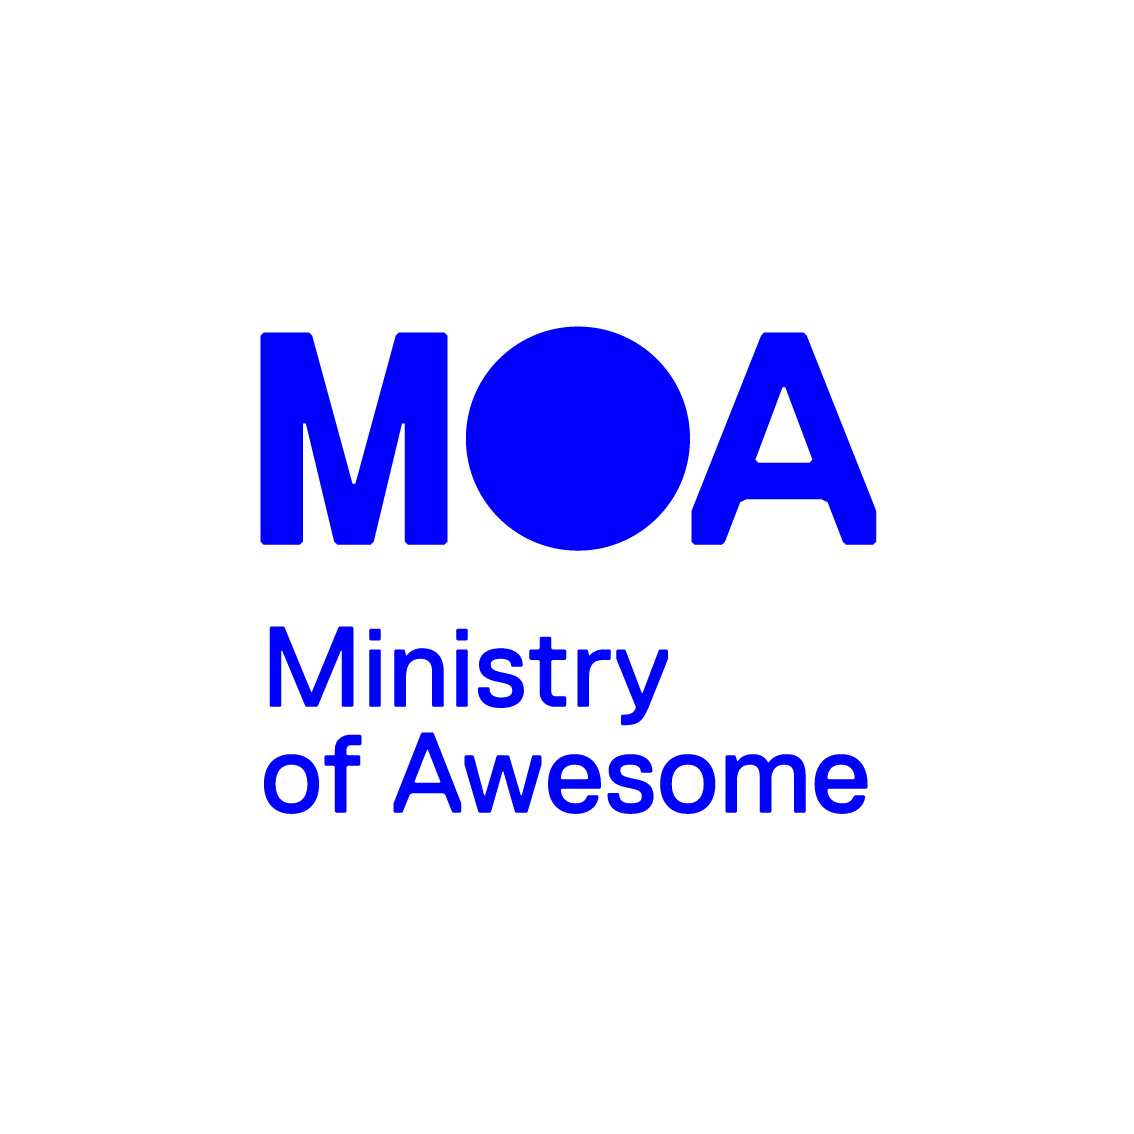 Ministry_of_Awesome.png